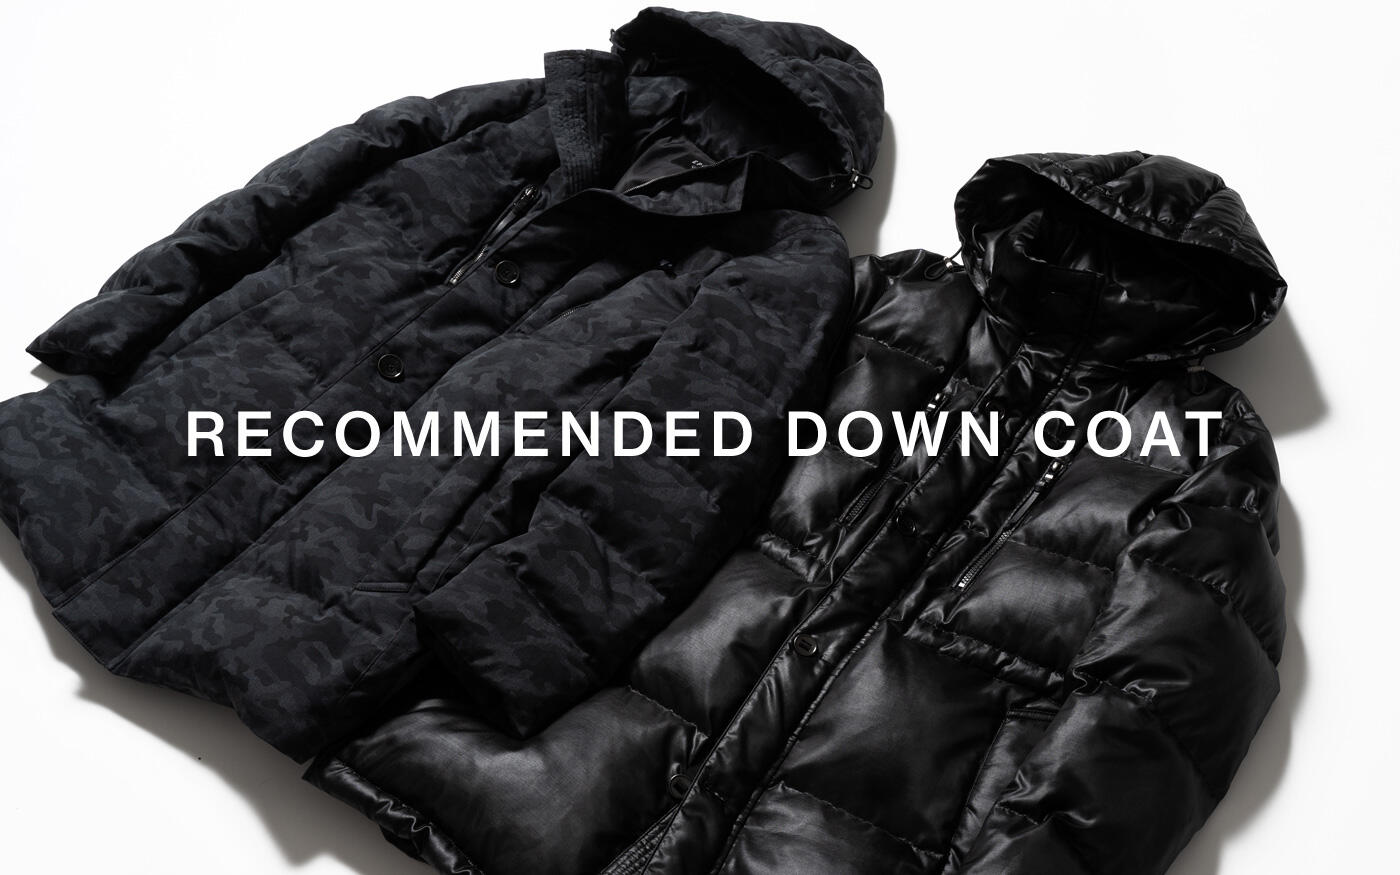 RECOMMENDED DOWN COAT